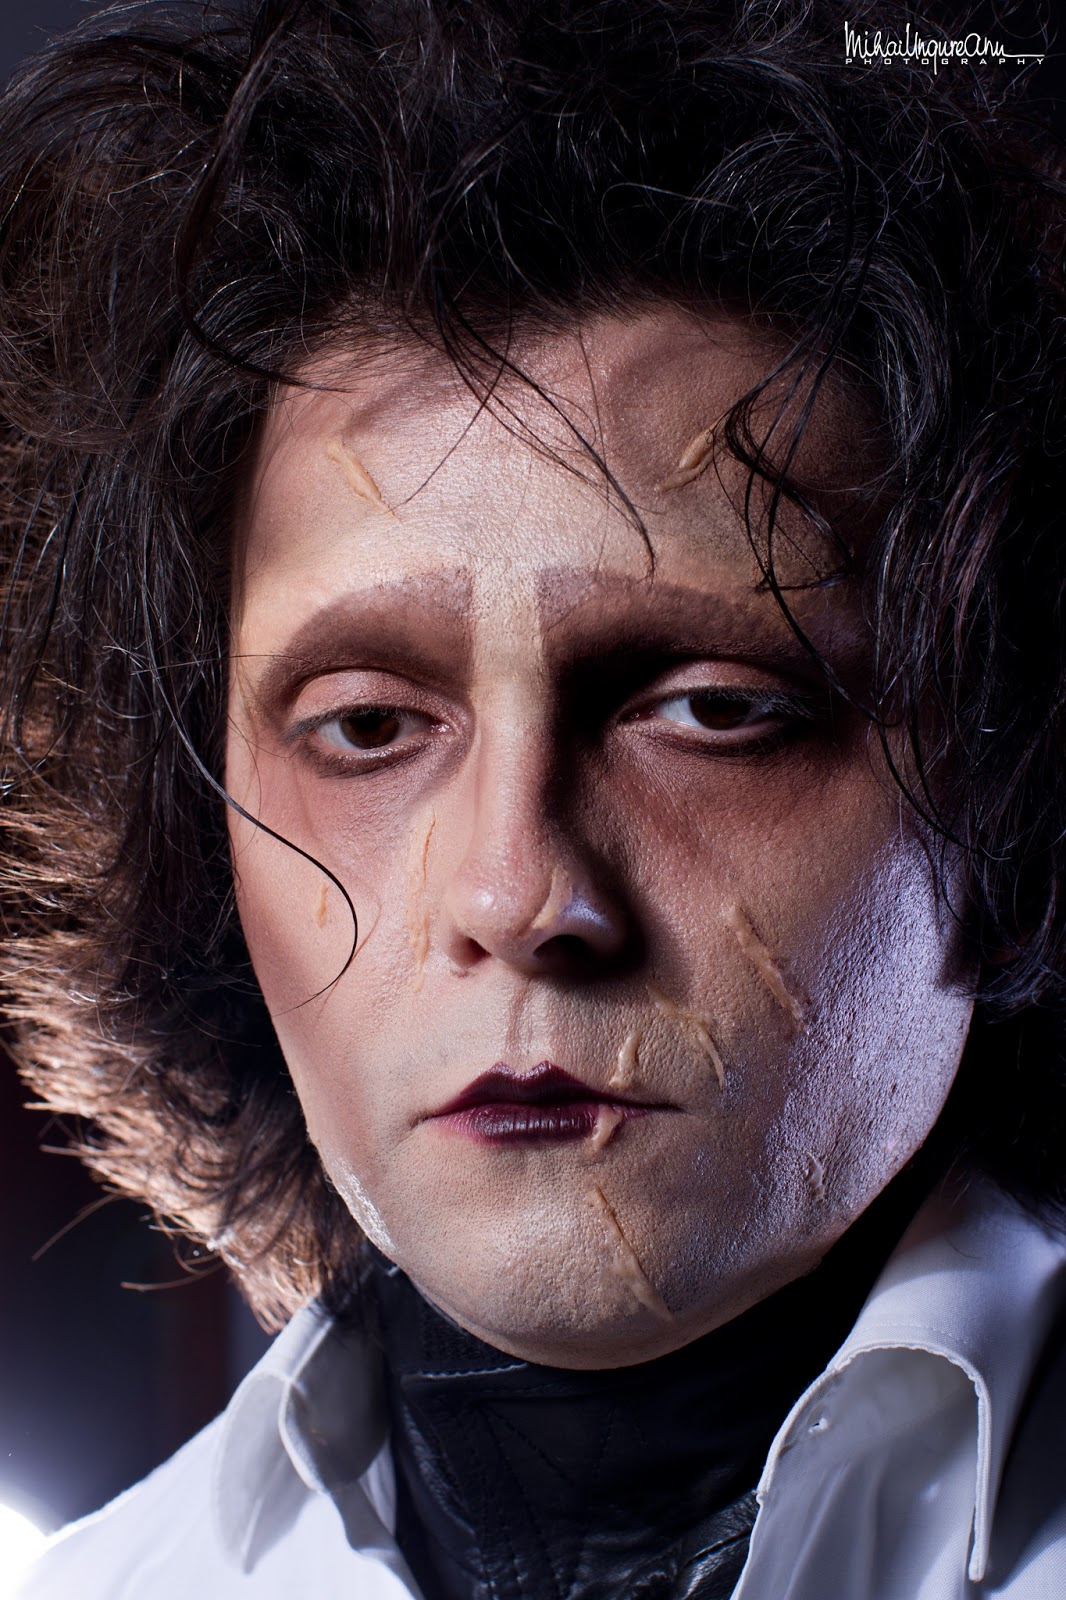 Mehron Makeup News: Special FX And Character Makeup Ideas - Character Makeup Ideas